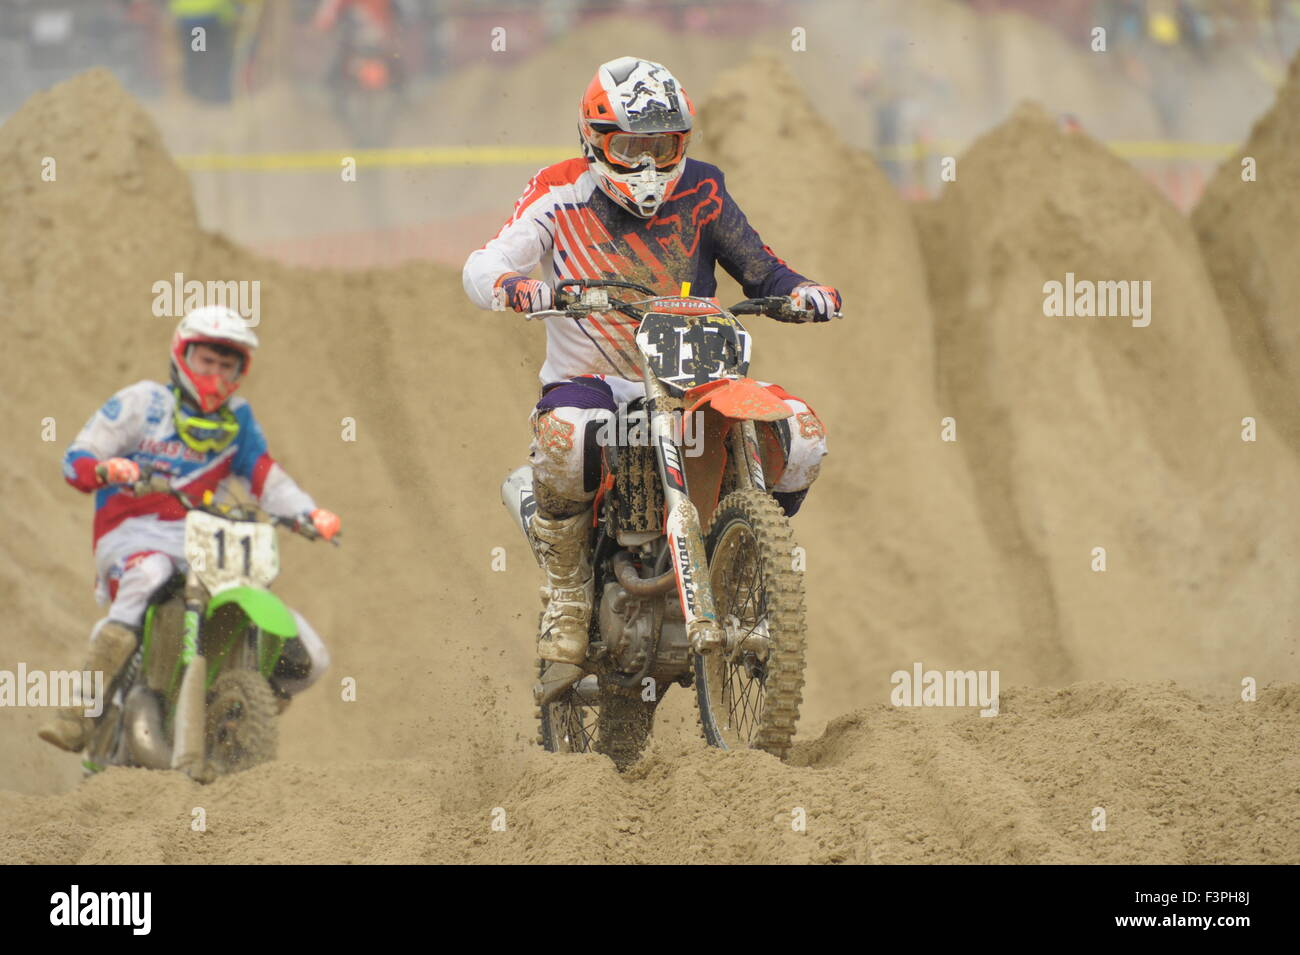 Weymouth, Dorset, UK - 11th October 2015. Annual Lion's Beach motocross weekend on Weymouth Beach.  Weymouth - Stock Image